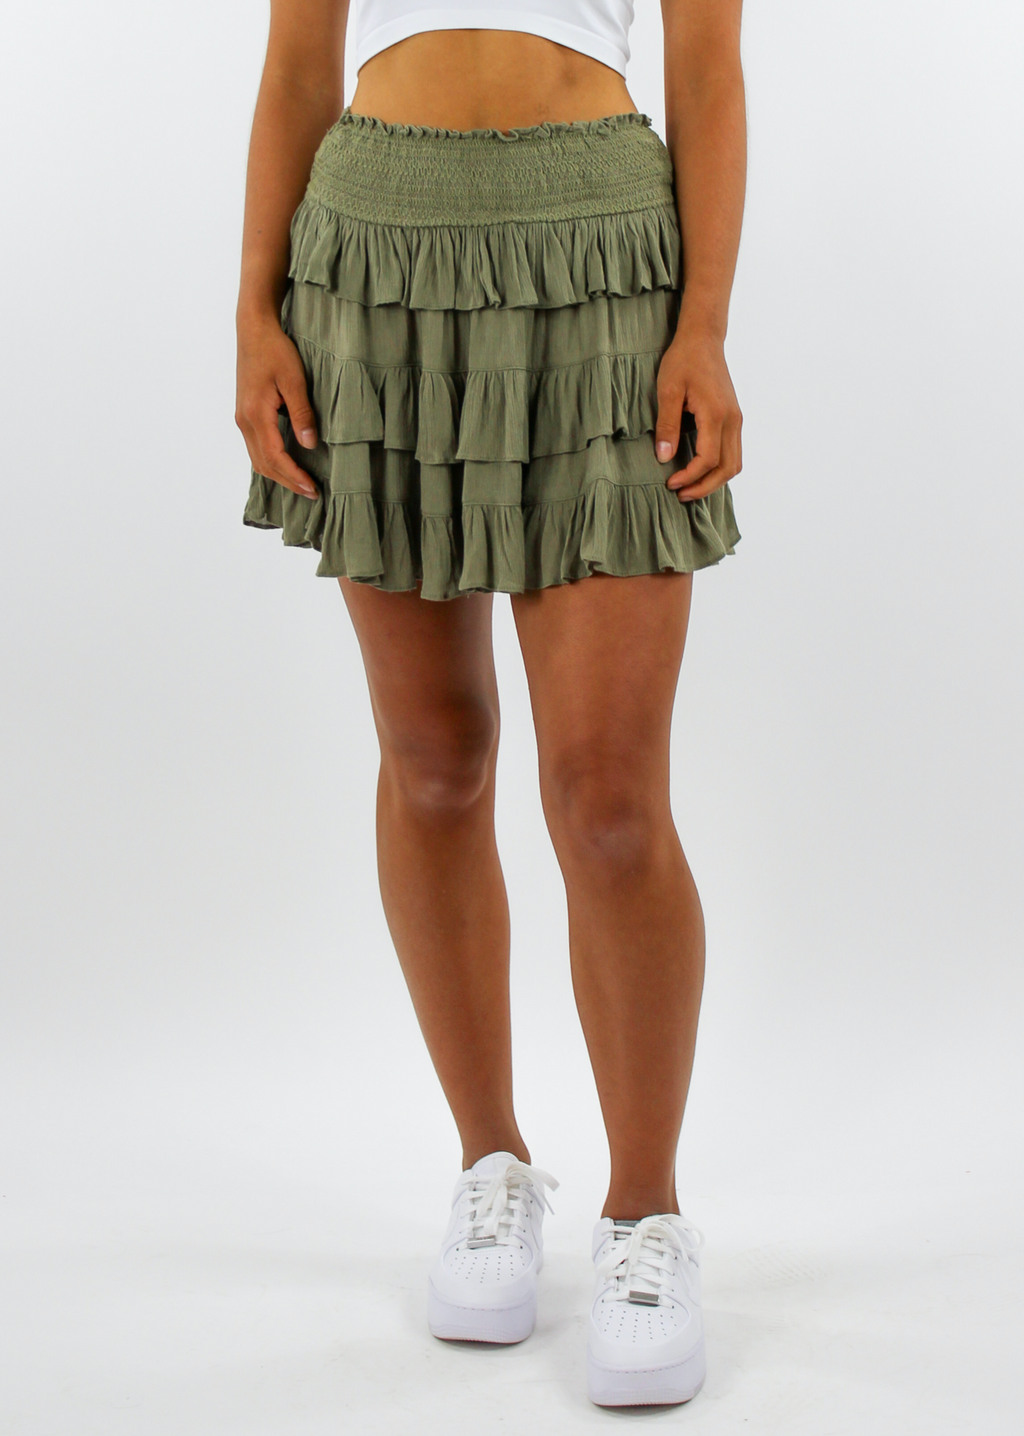 You And I Skirt ★ Olive Green - Rock N Rags